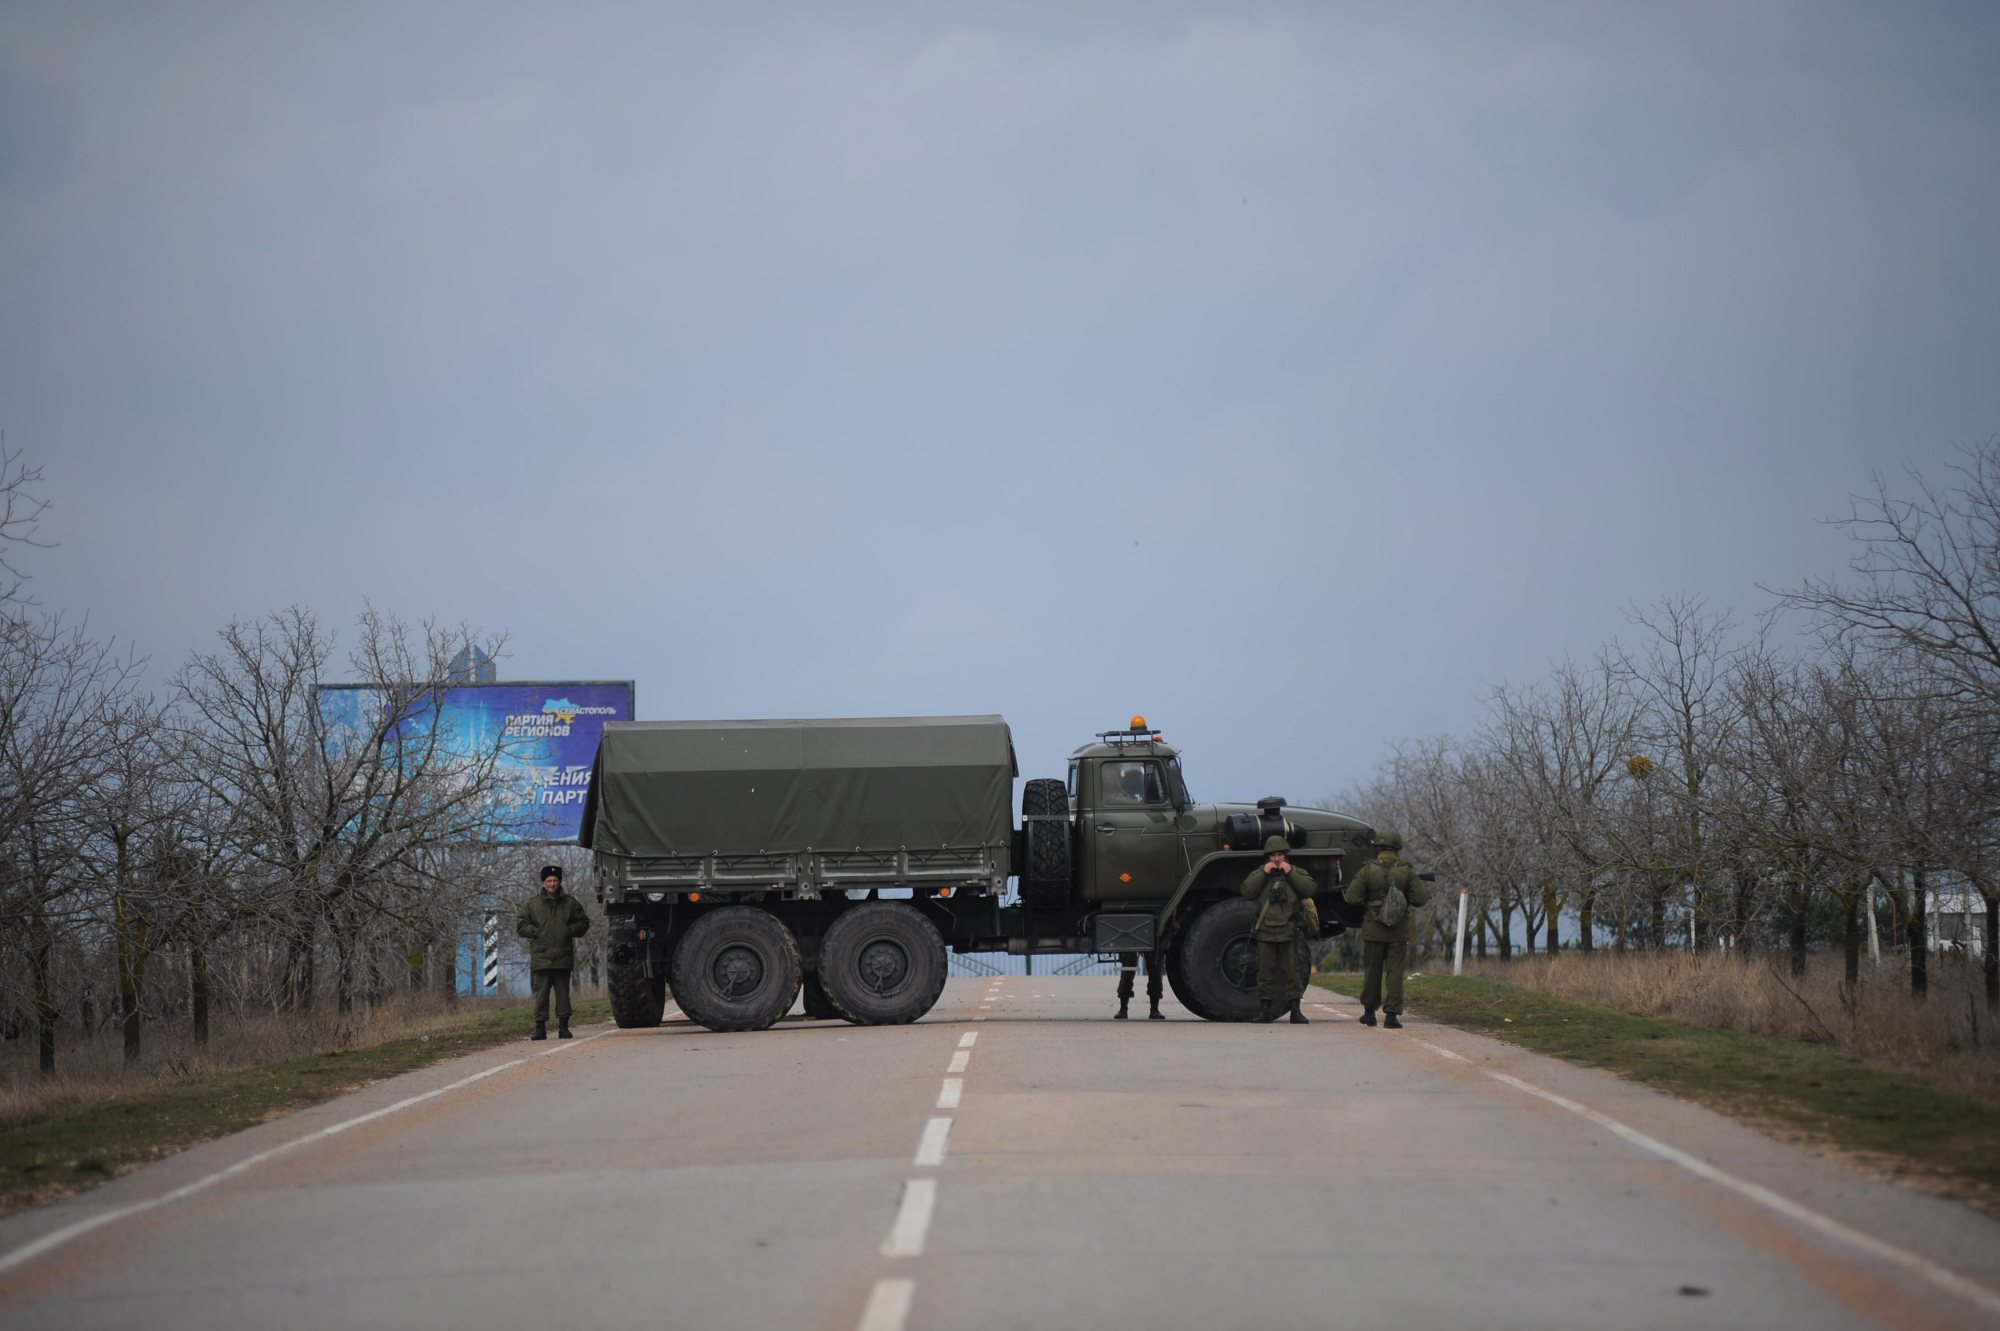 Russian troops block the road way towards the military airport at the Black Sea port of Sevastopol in Crimea, Feb. 28, 2014.